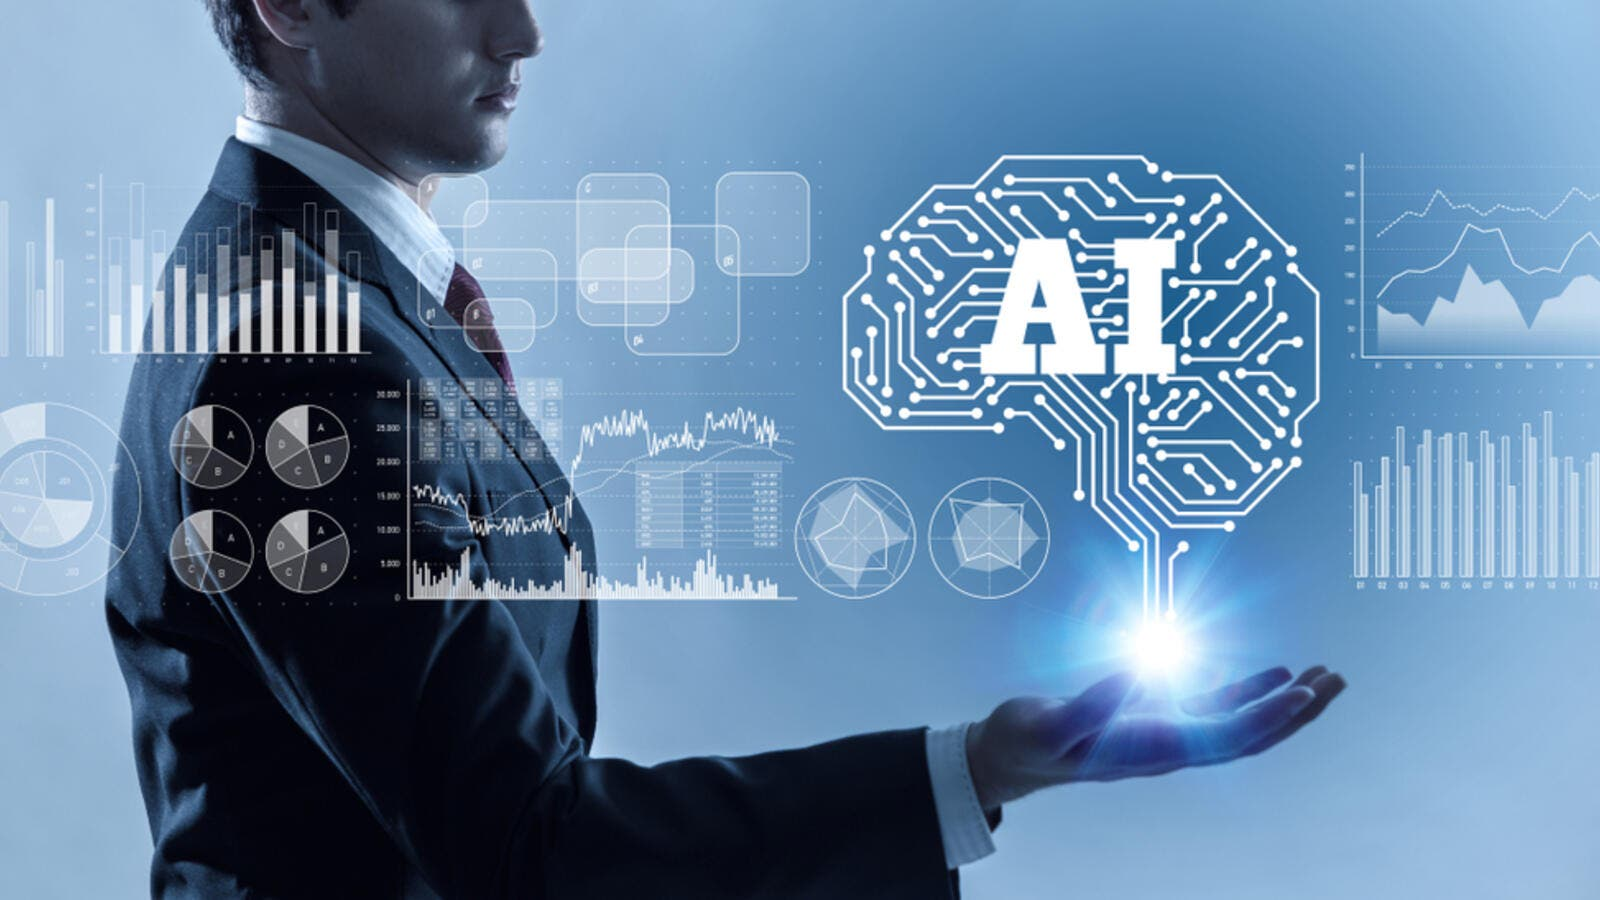 94 percent of companies in the UAE report involvement in AI at executive management level – the highest percentage of any surveyed country in MEA.